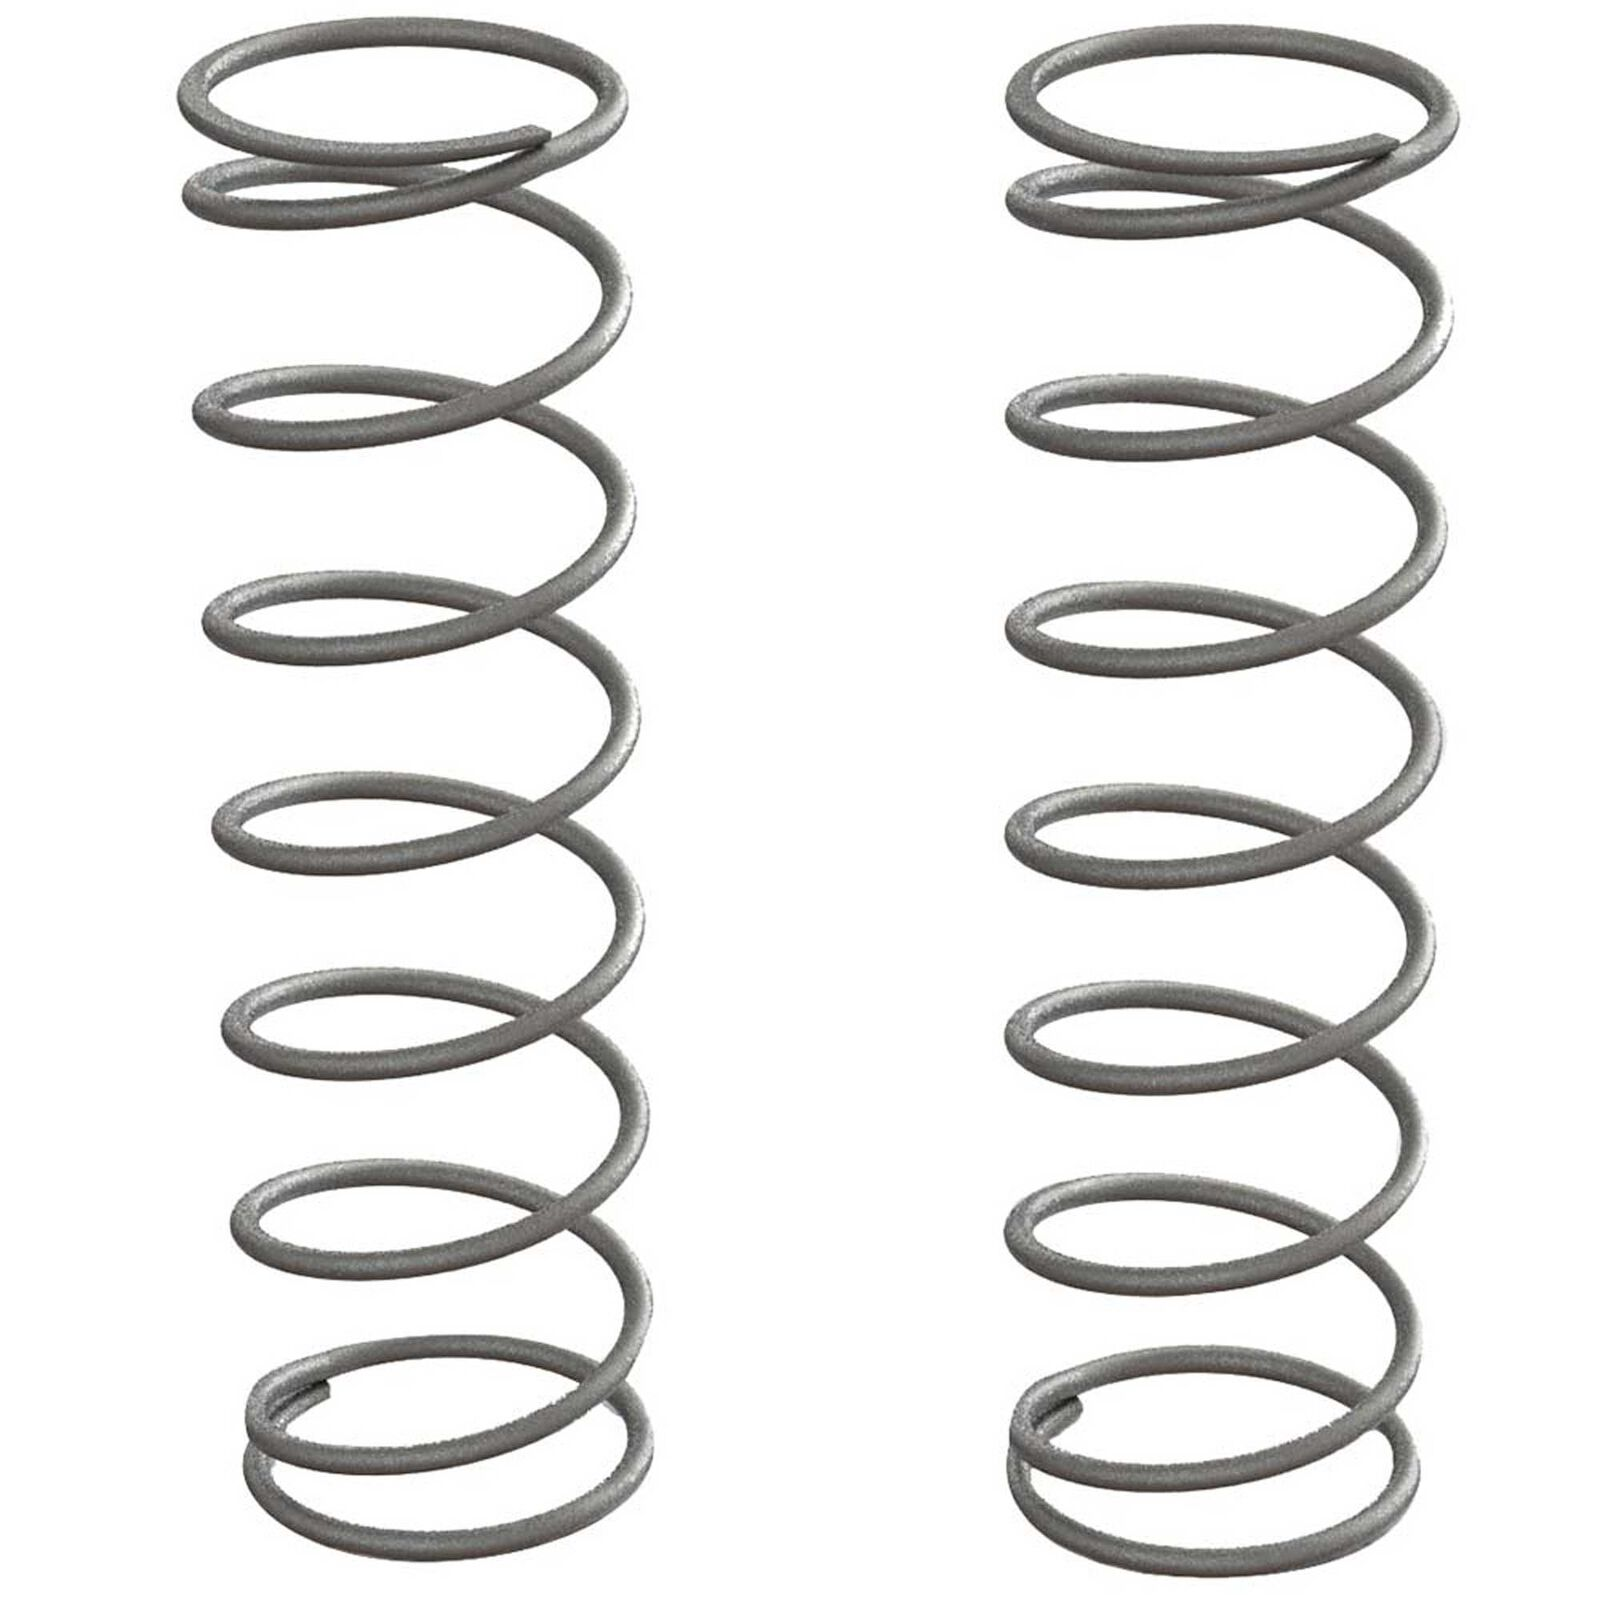 Shock Spring 85mm 1.09n/mm 6.2lb/in (2): 6S